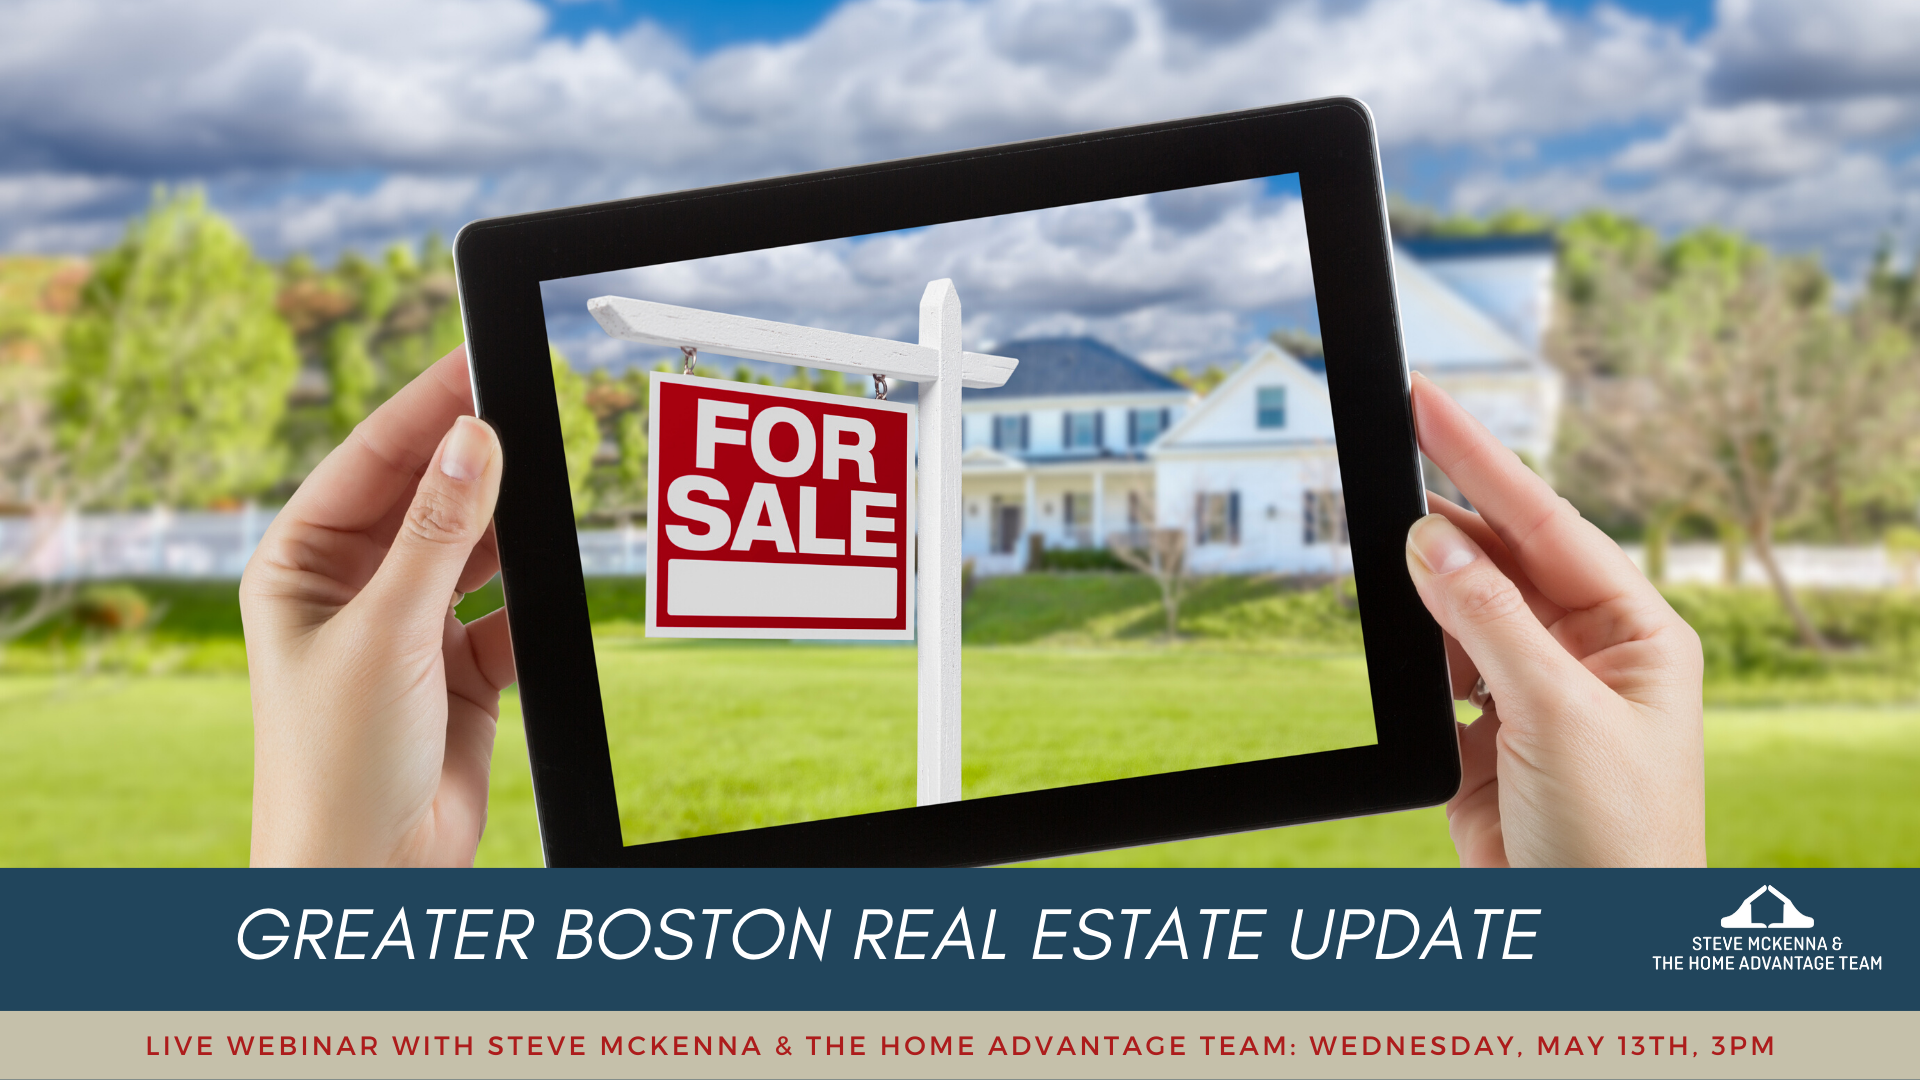 Greater Boston Real Estate Update